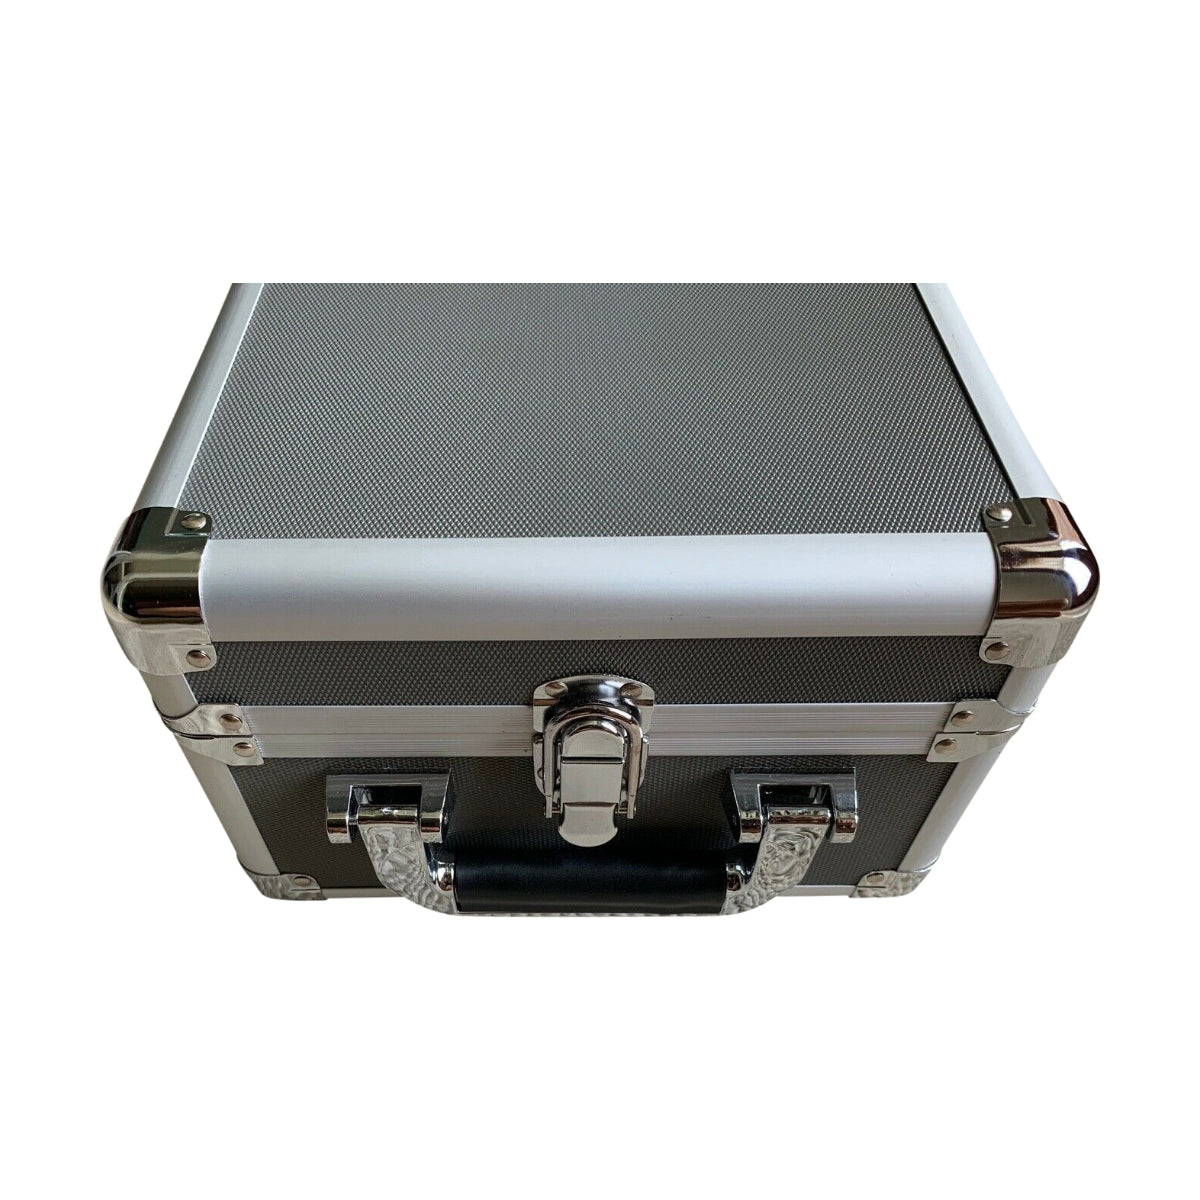 DELUXE MINI Travel Graded Card Storage Box PSA Only, Closed Front